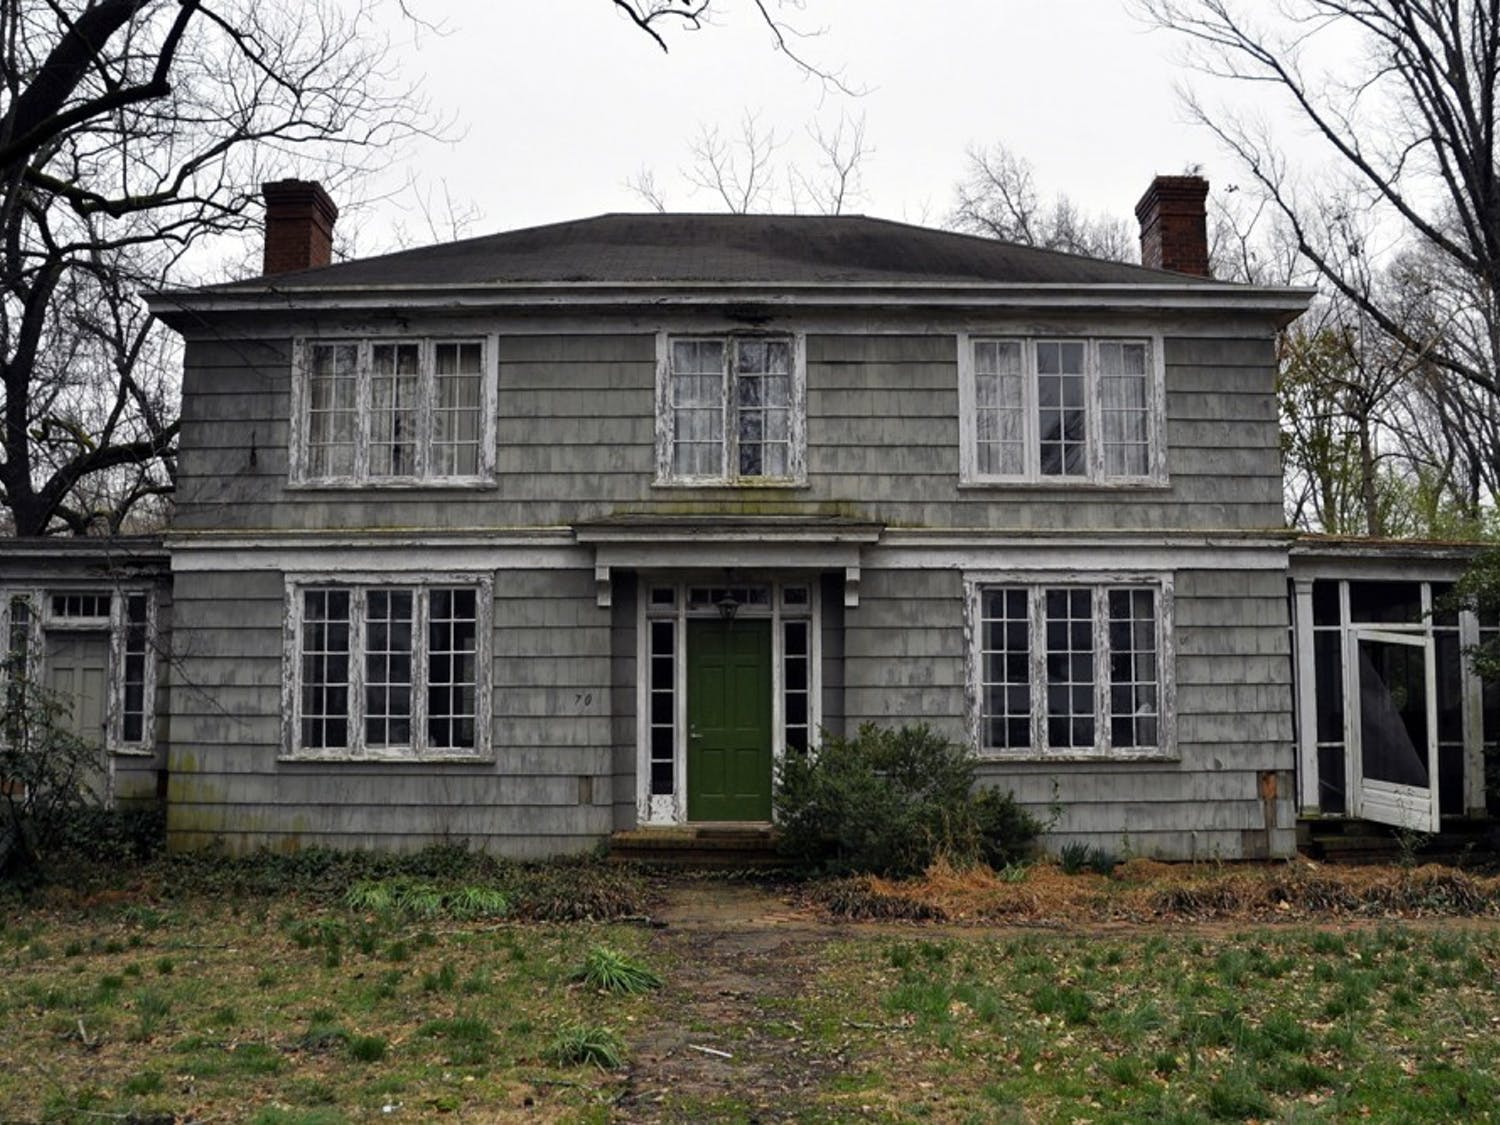 A local couple has requested permission to tear down this historic house, located at 704 Gimghoul Road, to build a new one in its place.